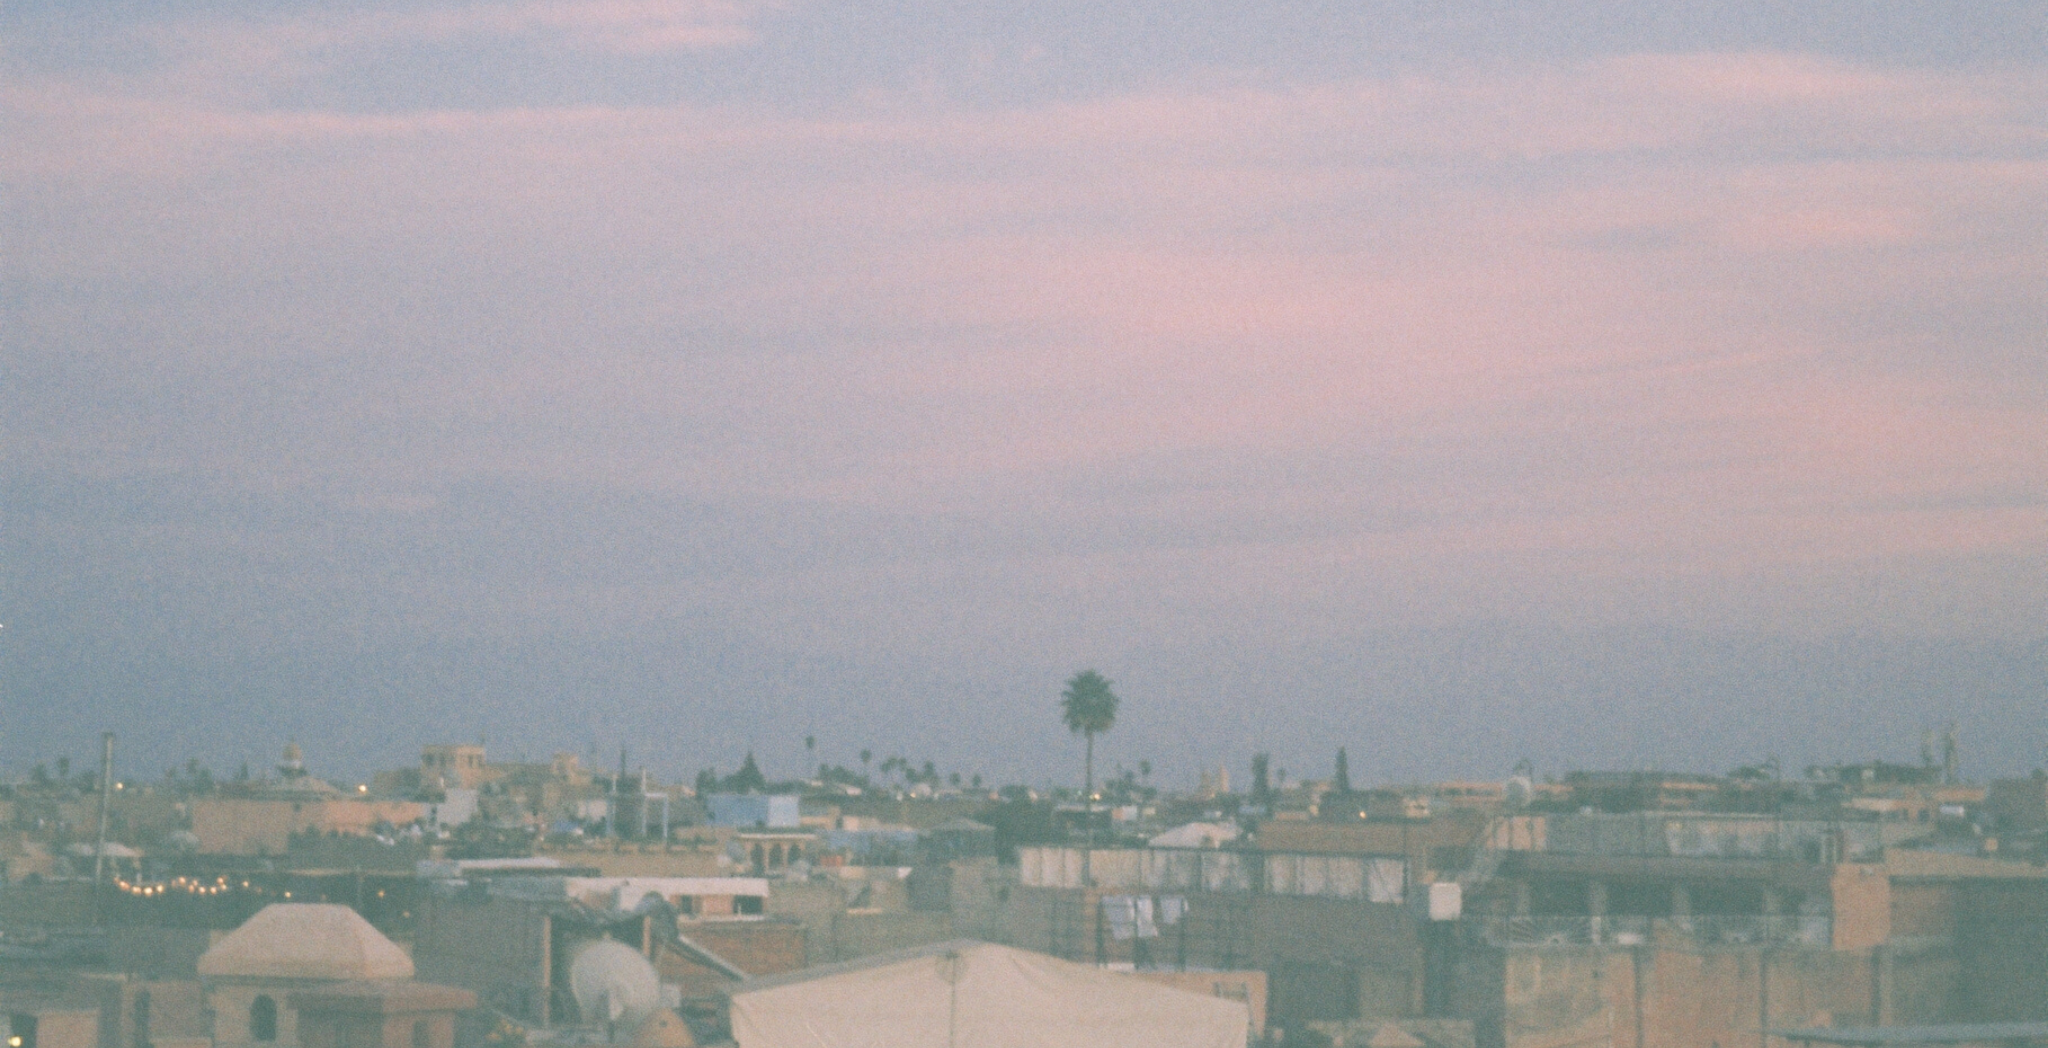 Morocco on film, sunsets in Marrakech